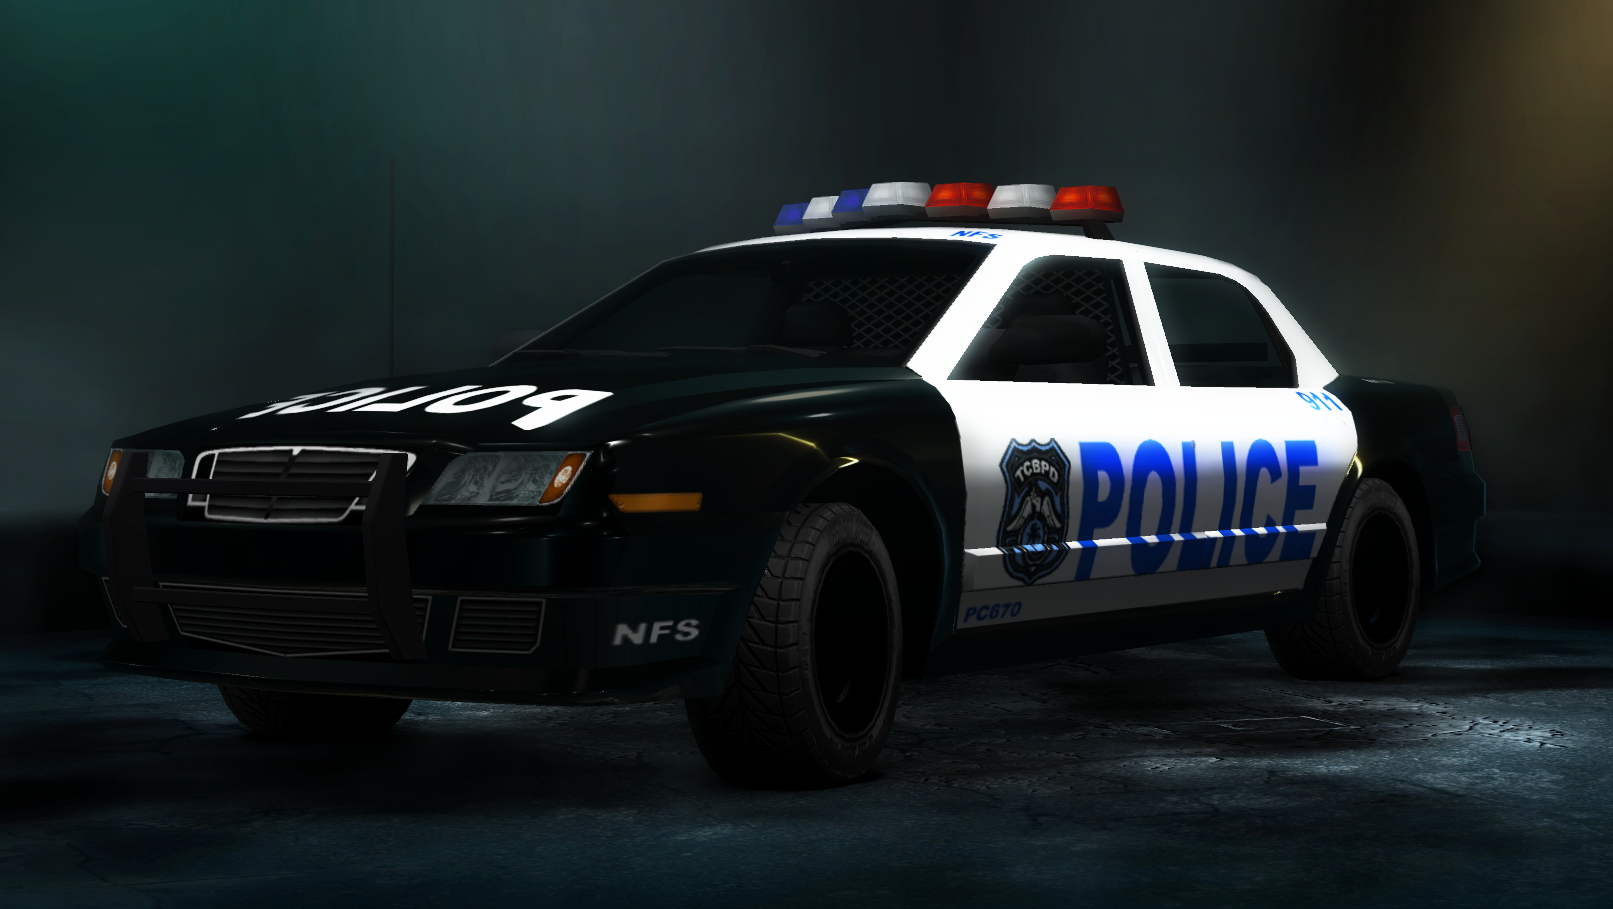 Tri City Ford >> Tri-City Bay Police Department at The Need for Speed Wiki - Need for Speed series information